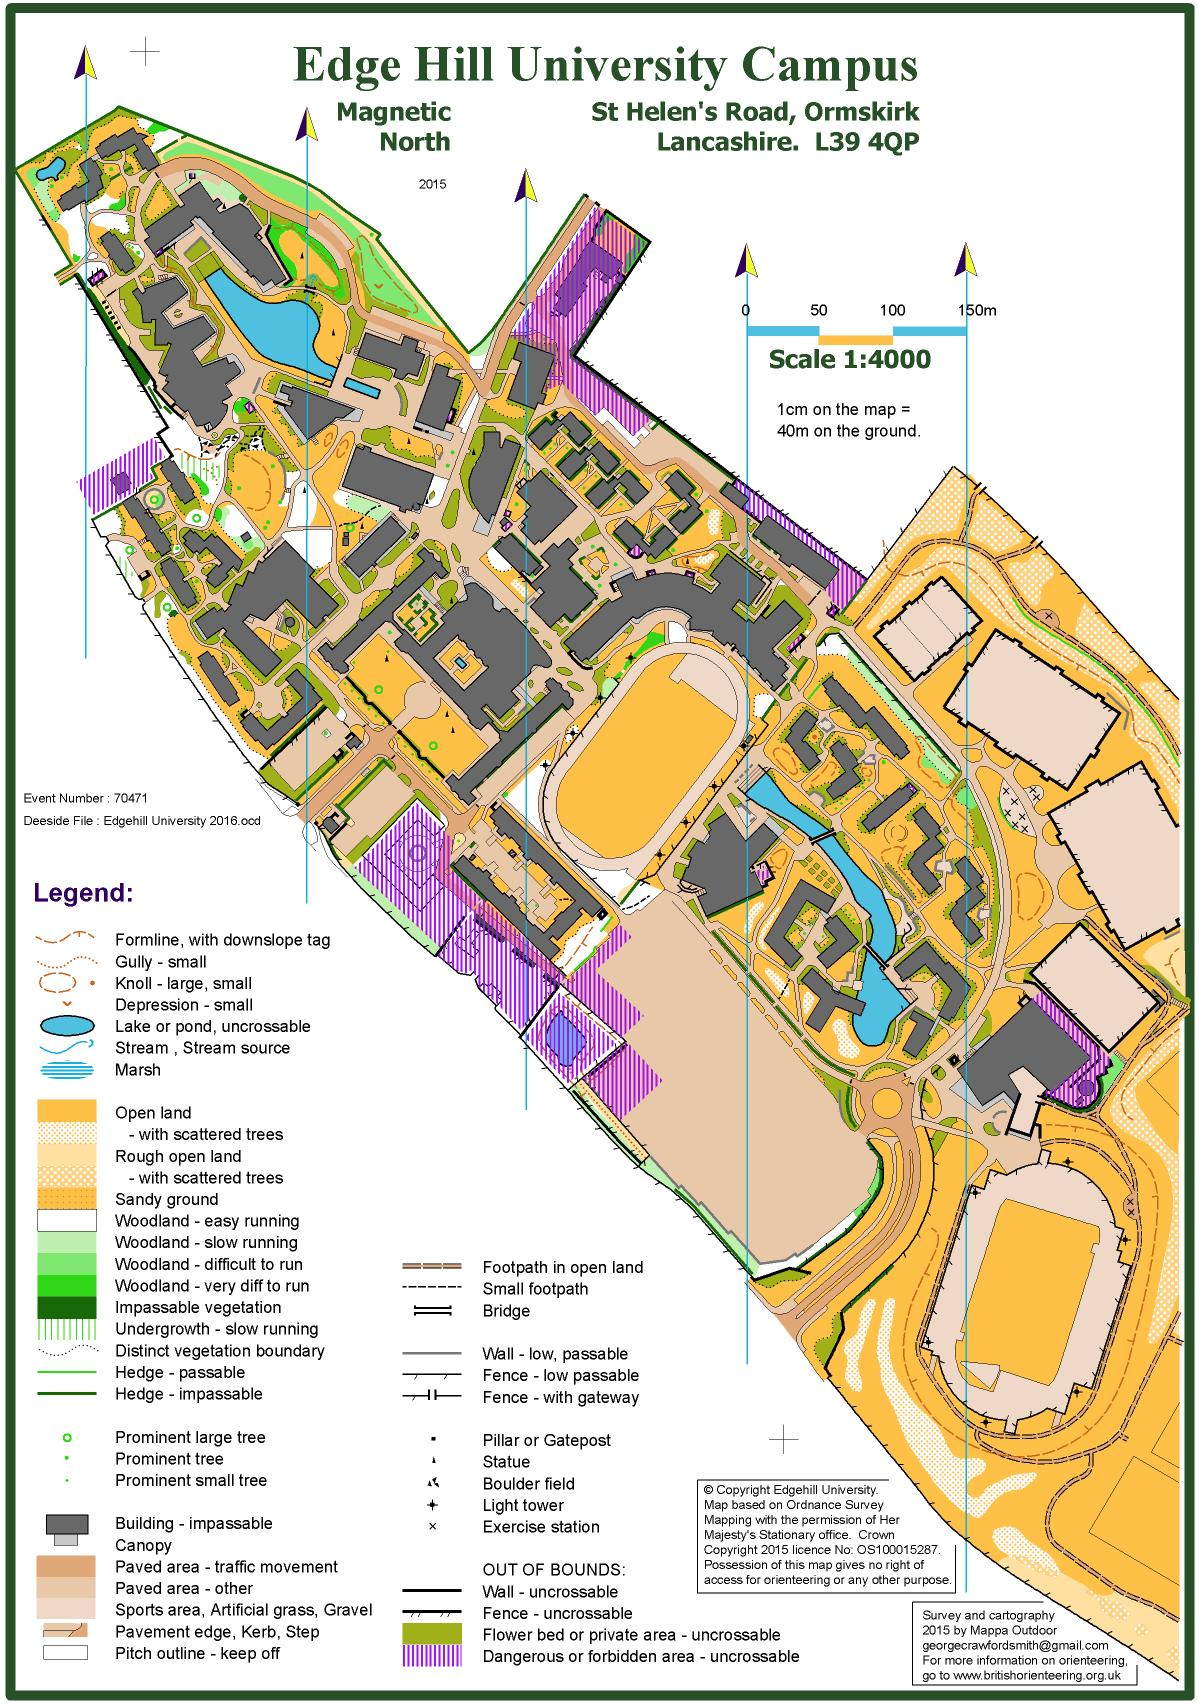 Oc Campus Map.Edge Hill University 2016 June 21st 2016 Orienteering Map From